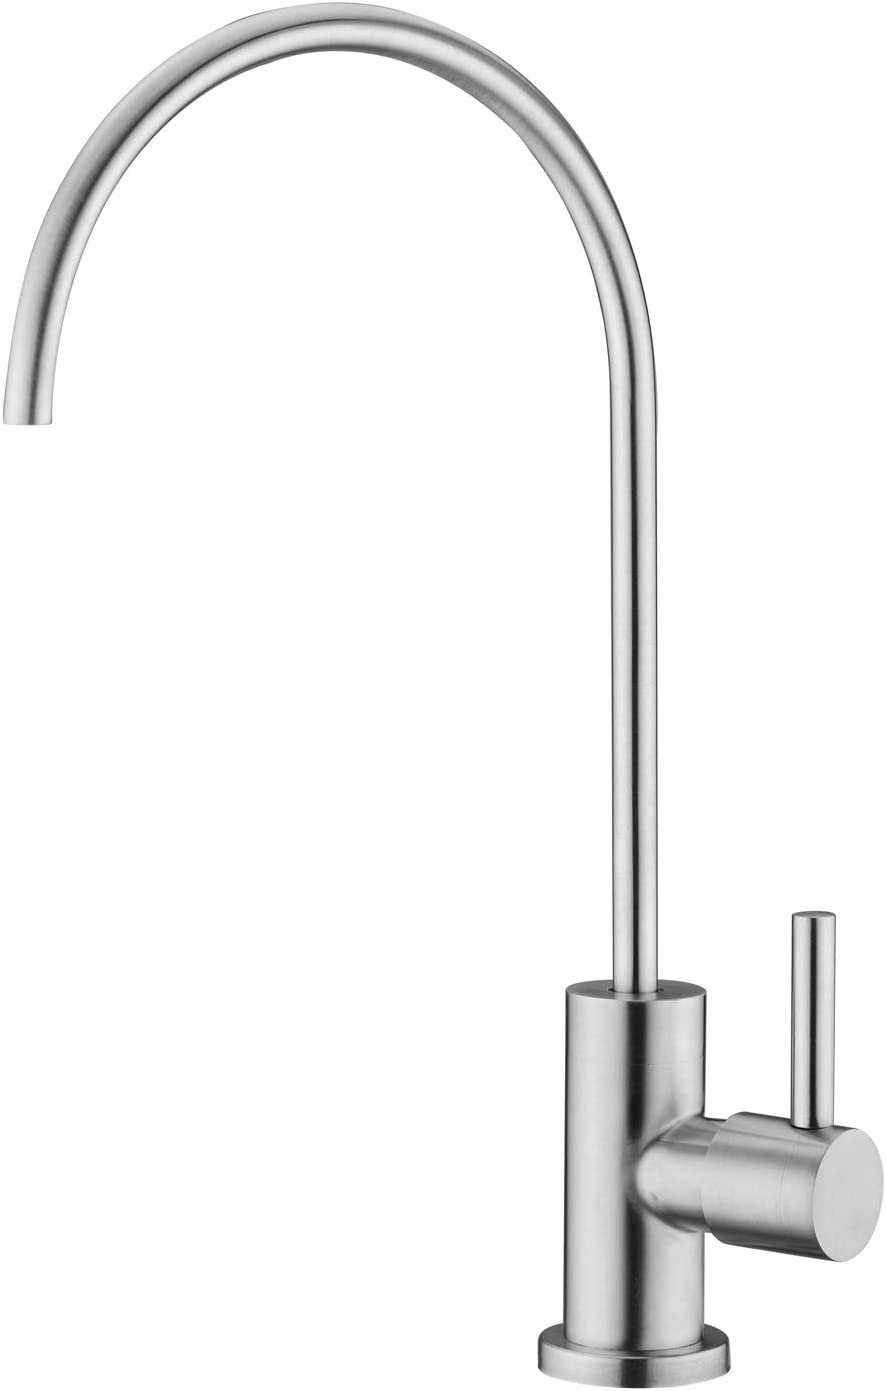 Pirooso Faucet for Water Filter, 100% Lead-Free Kitchen Faucet Drinking Water, 360° Swivel Kitchen Sink Water Filter Faucet,Fits Most Reverse Osmosis Units or Water Filtration System, Brushed Nickel